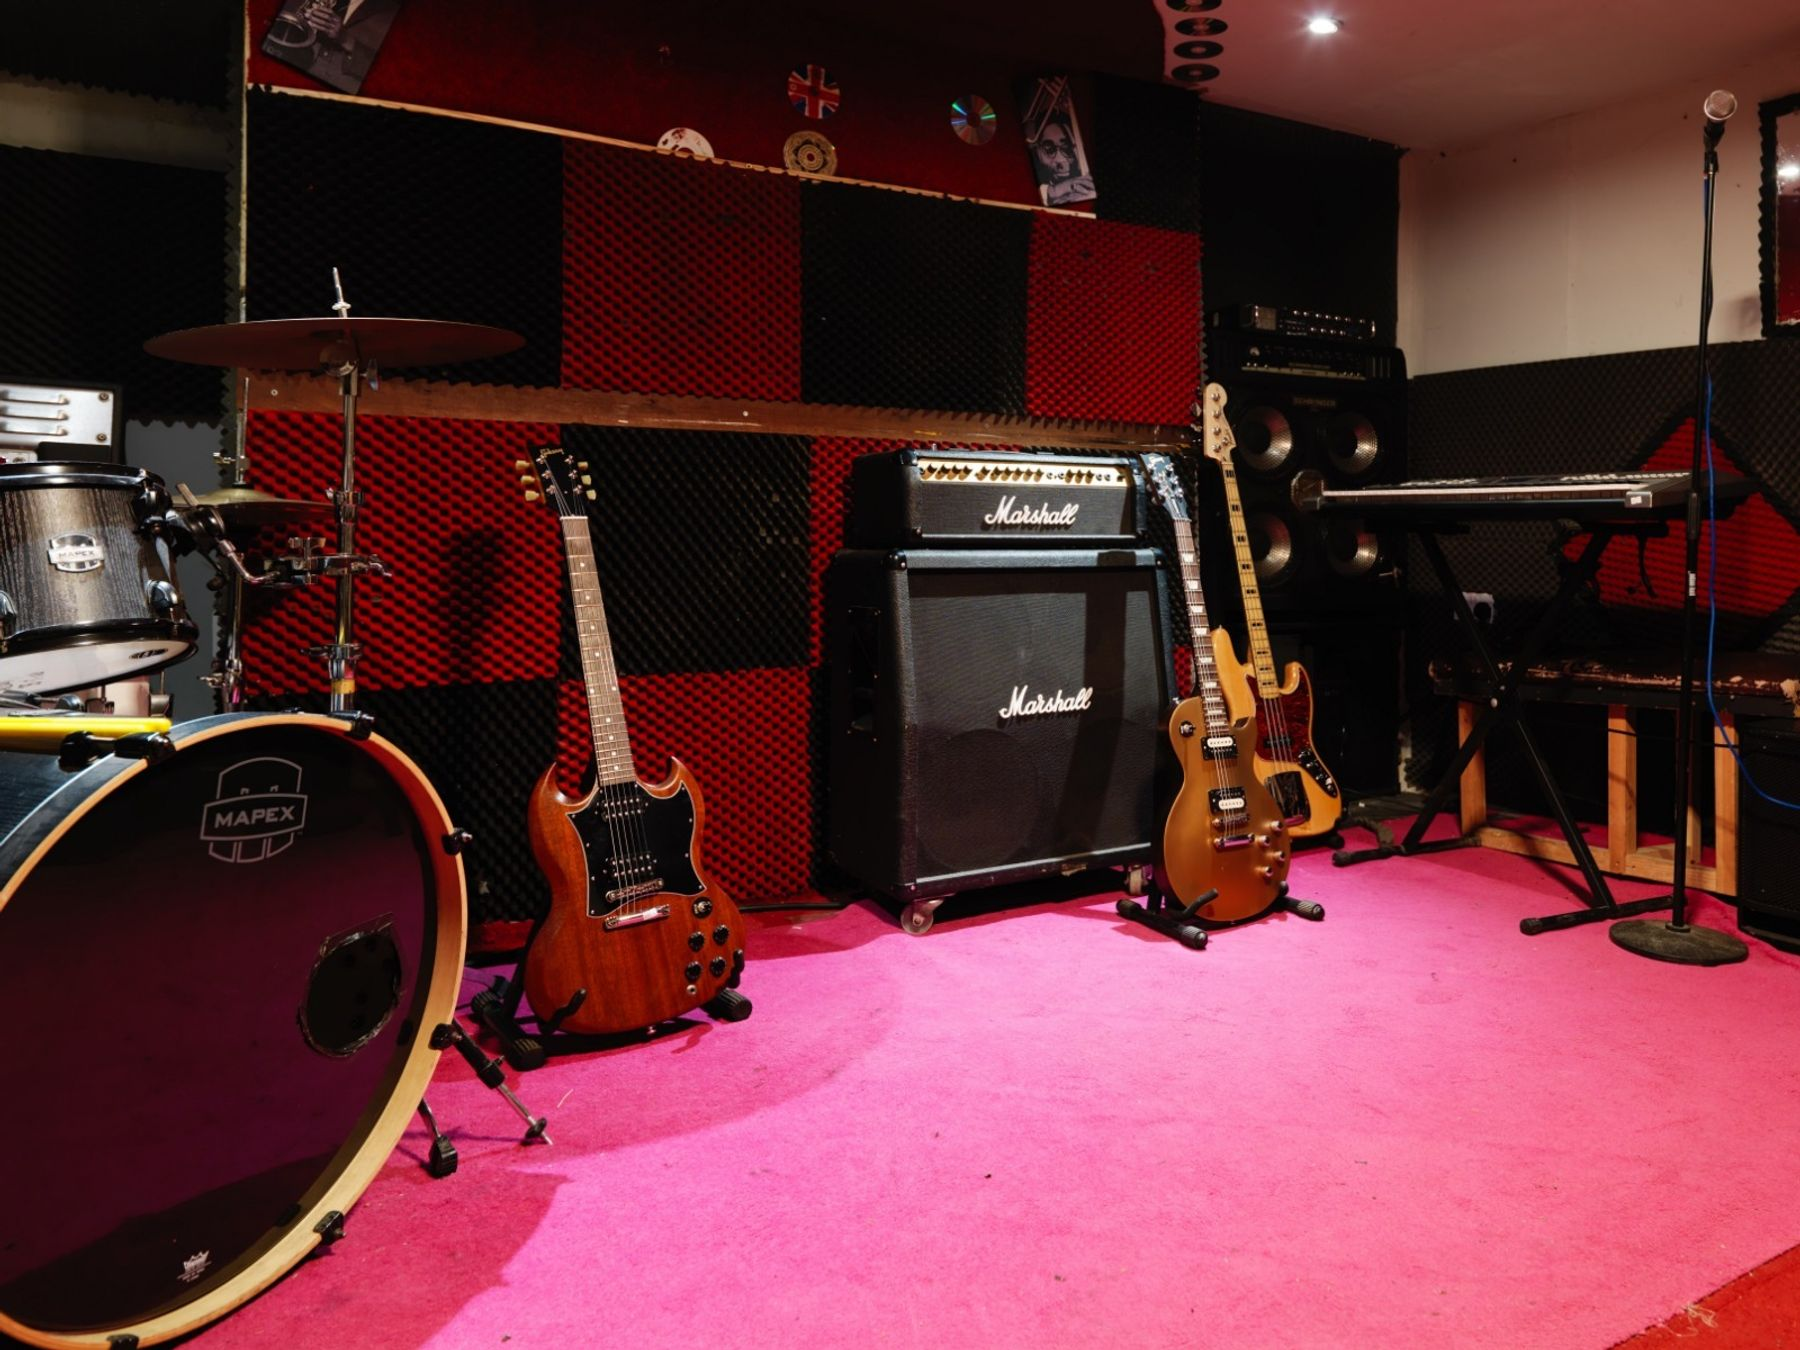 Rehearsal room - night time